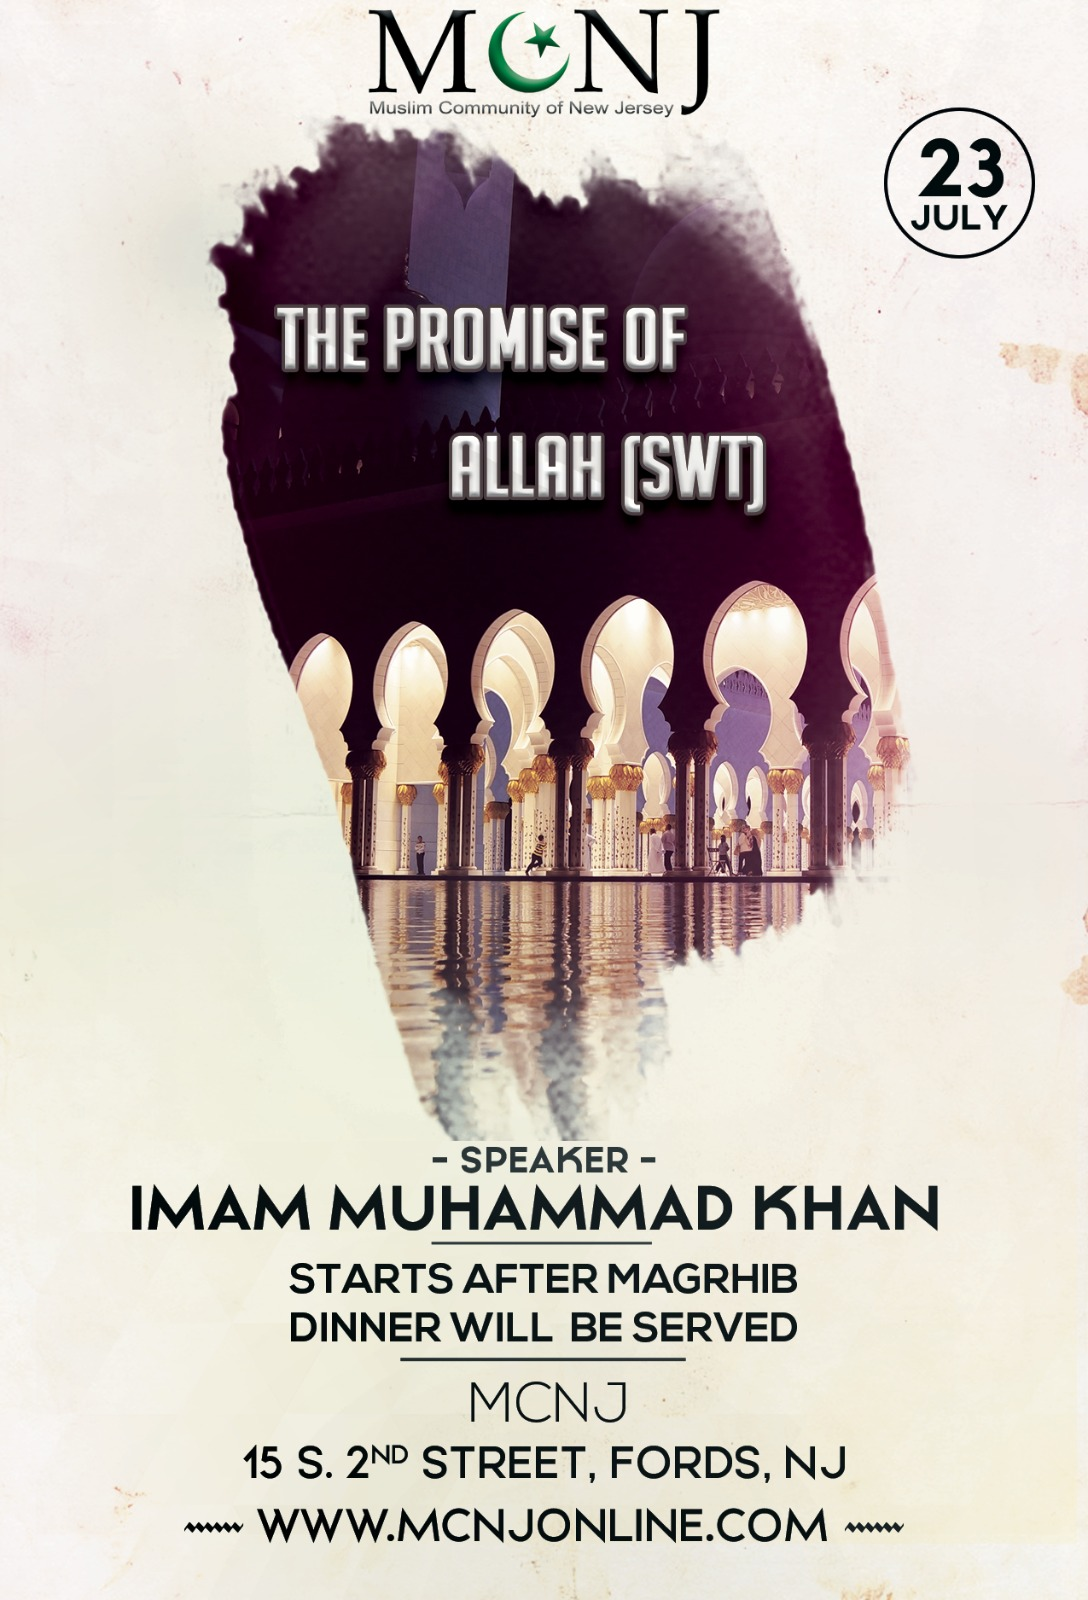 The Promise of Allah (SWT)